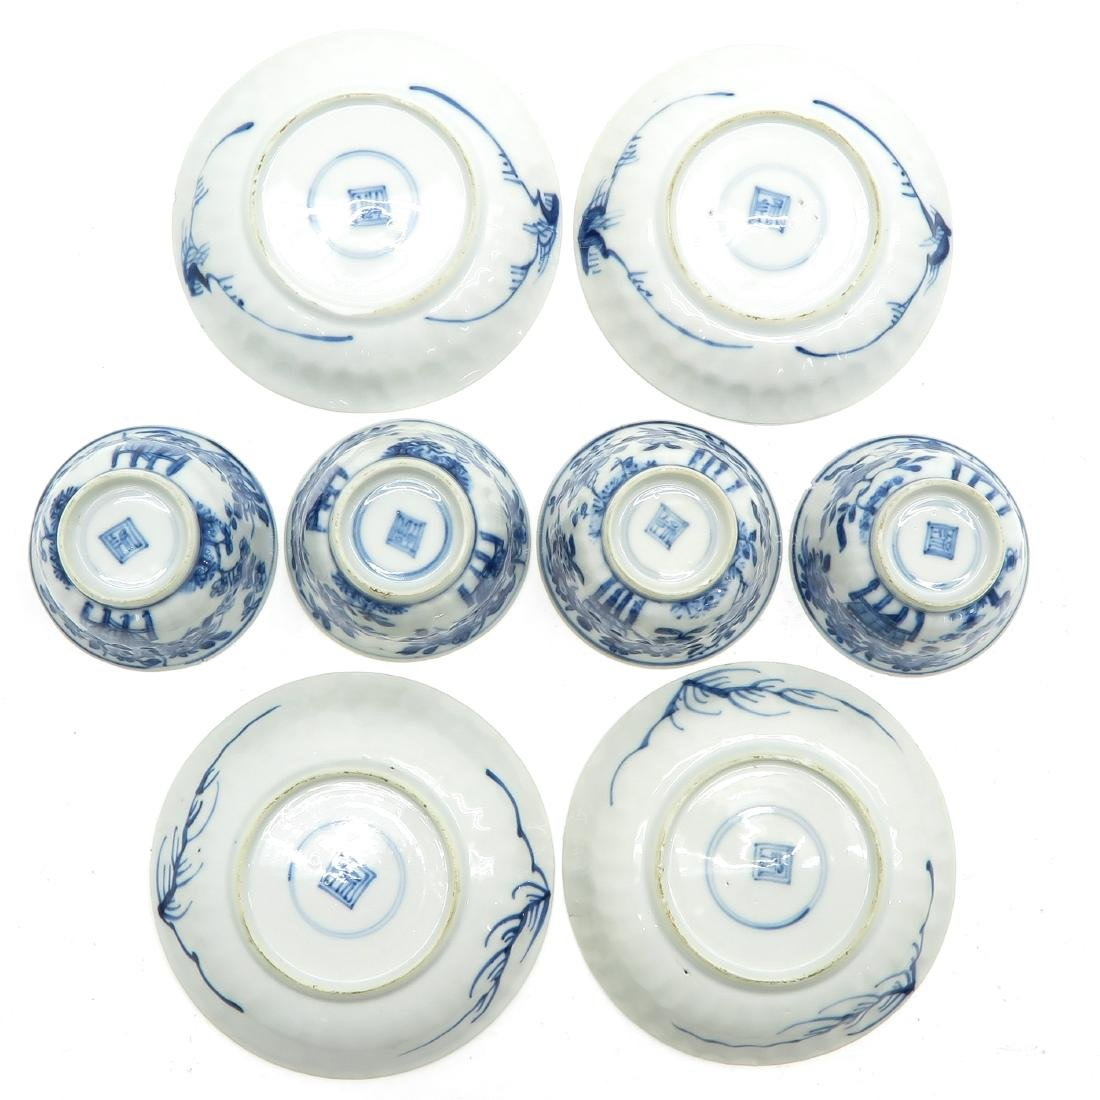 Lot of 4 Cups and Saucers - 5